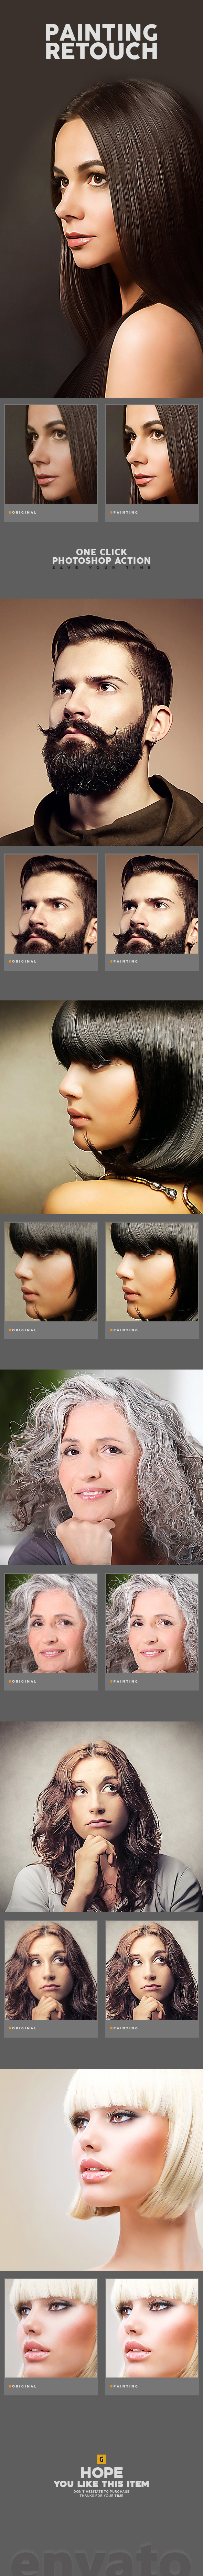 Painting Retouch Photoshop Action - Photo Effects Actions